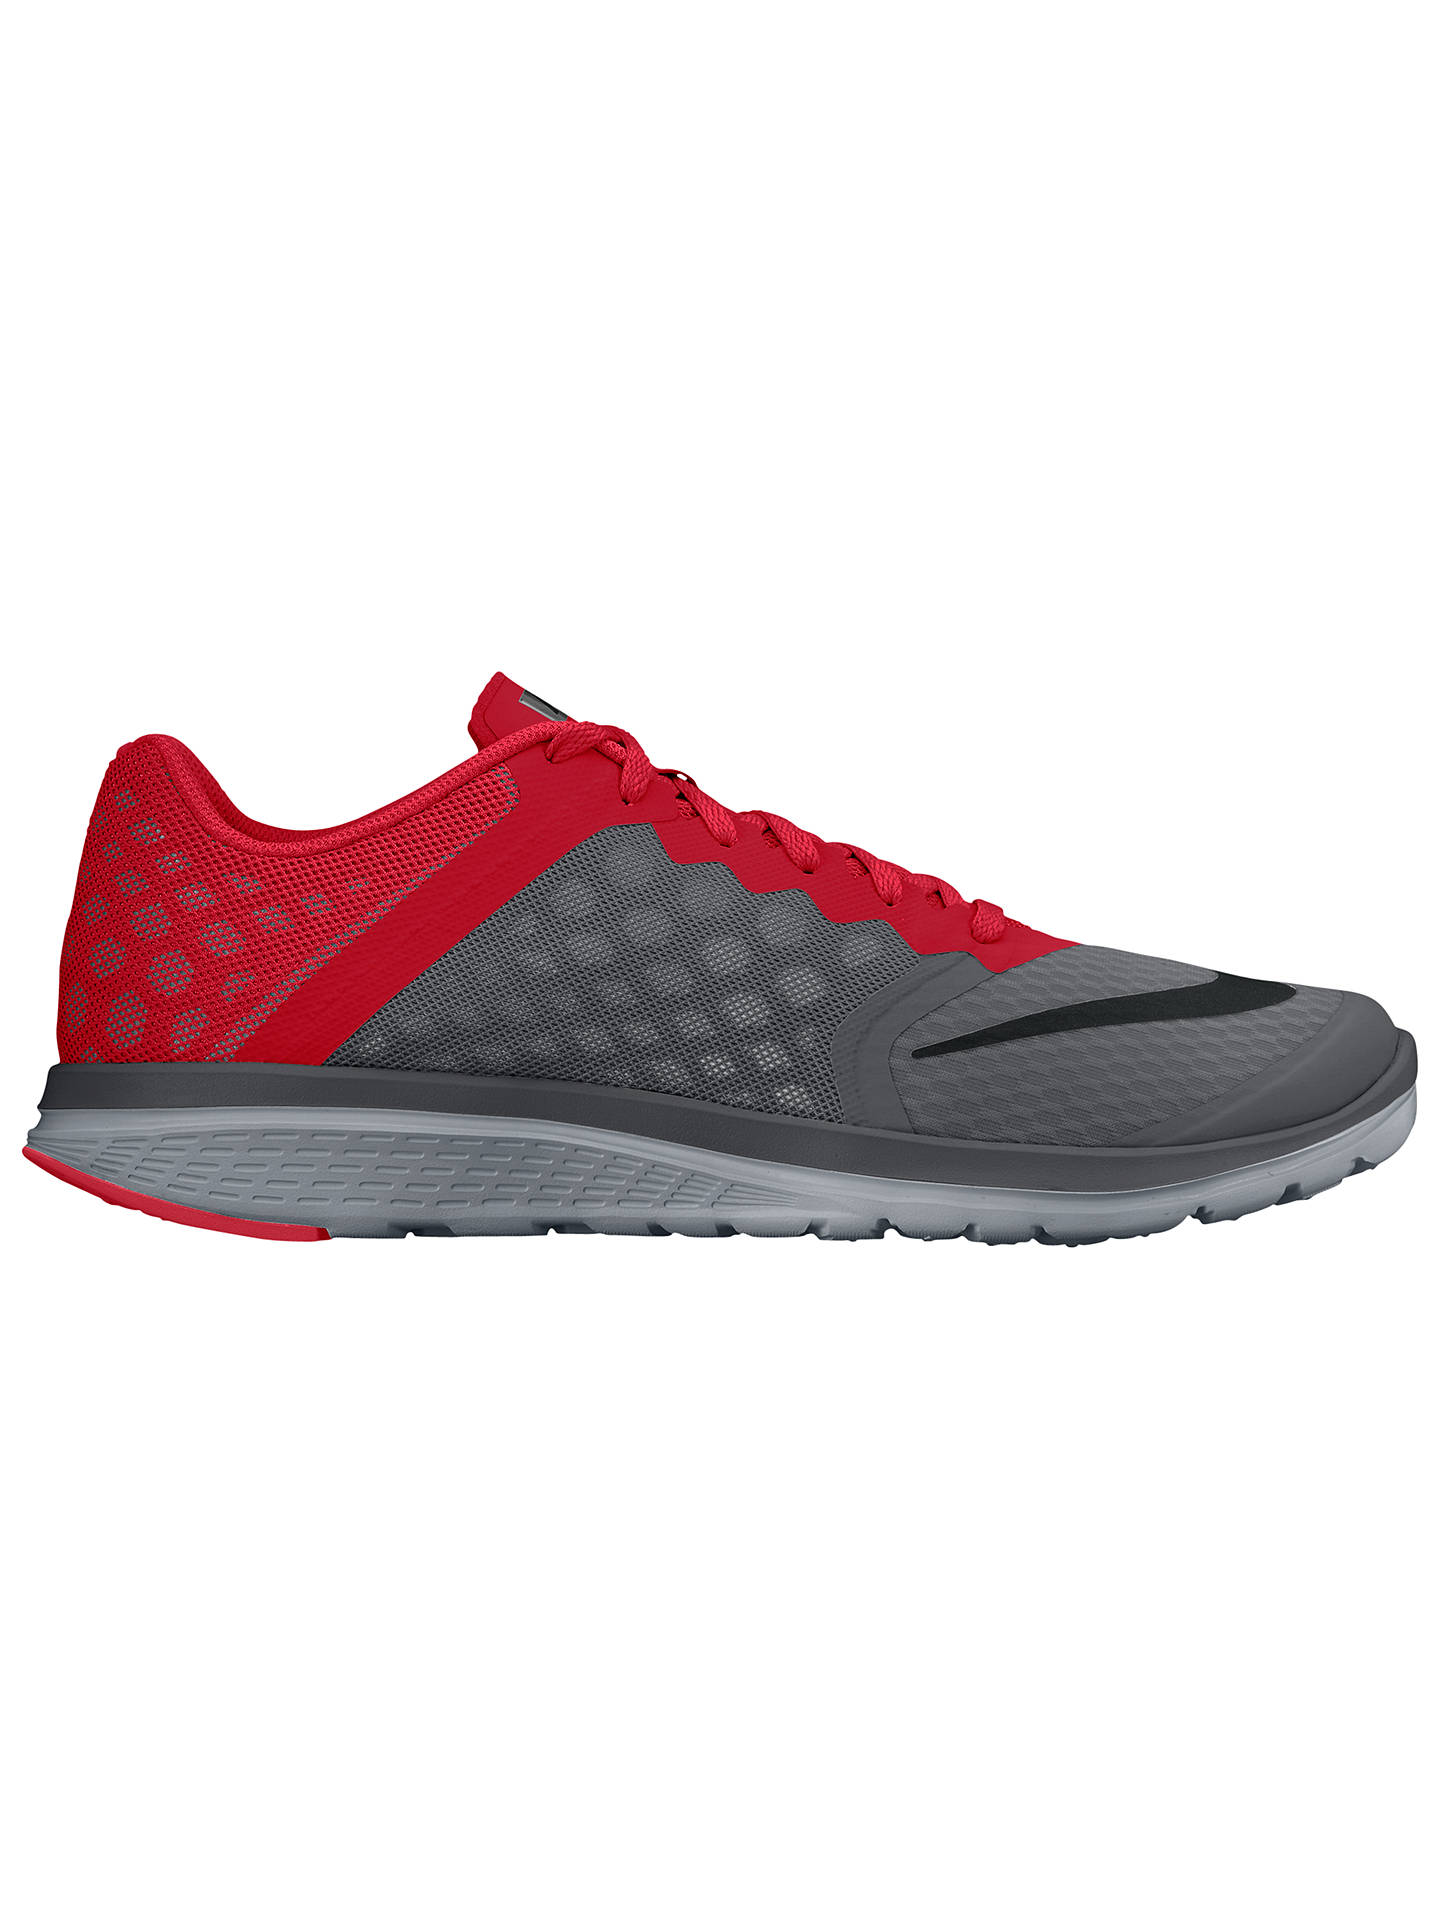 check out 1eb50 6e1cf Buy Nike FS Lite Run 3 Men s Running Shoes, Grey Red, 8 Online ...